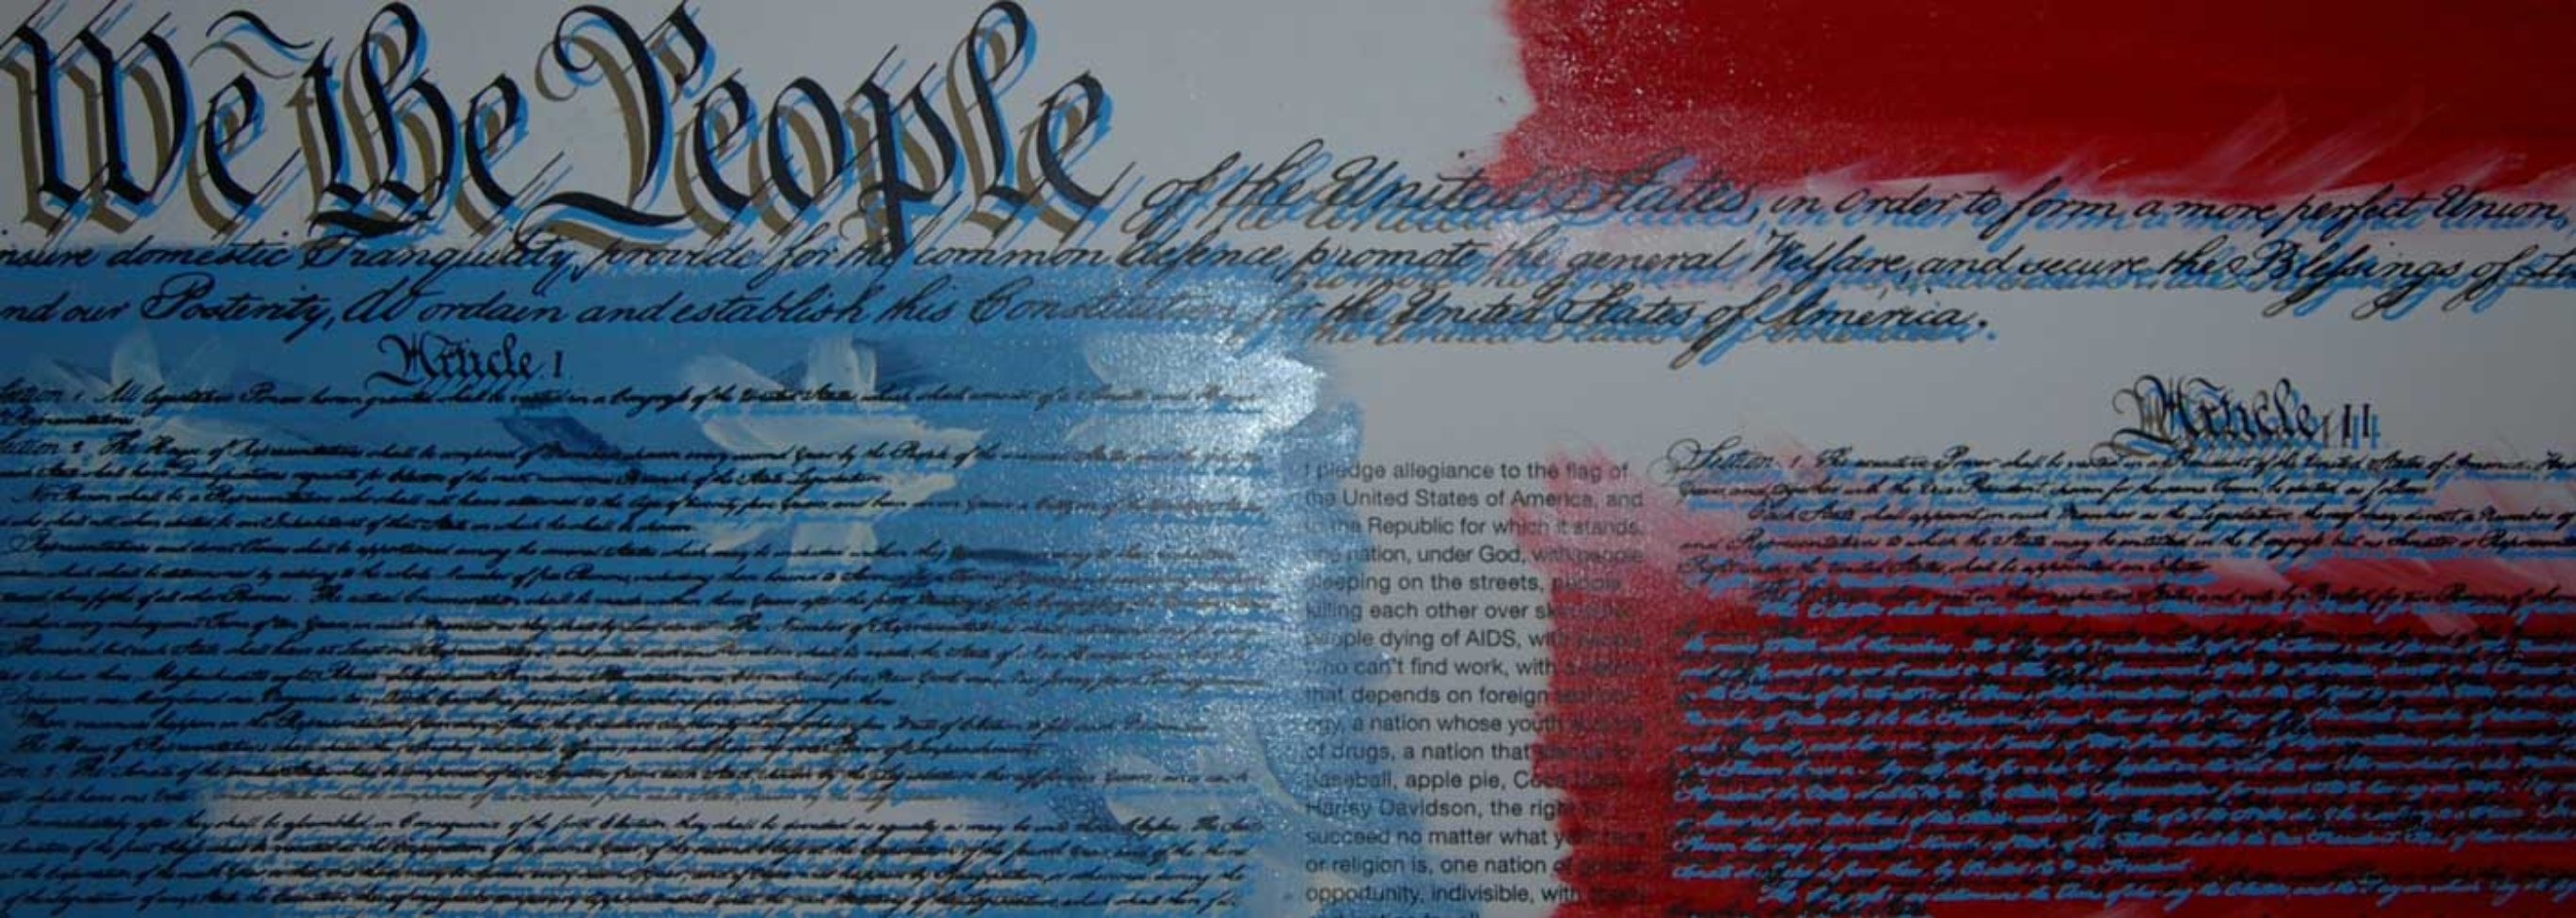 We the People Constitution Embellished Limited Edition Print by Steve Kaufman